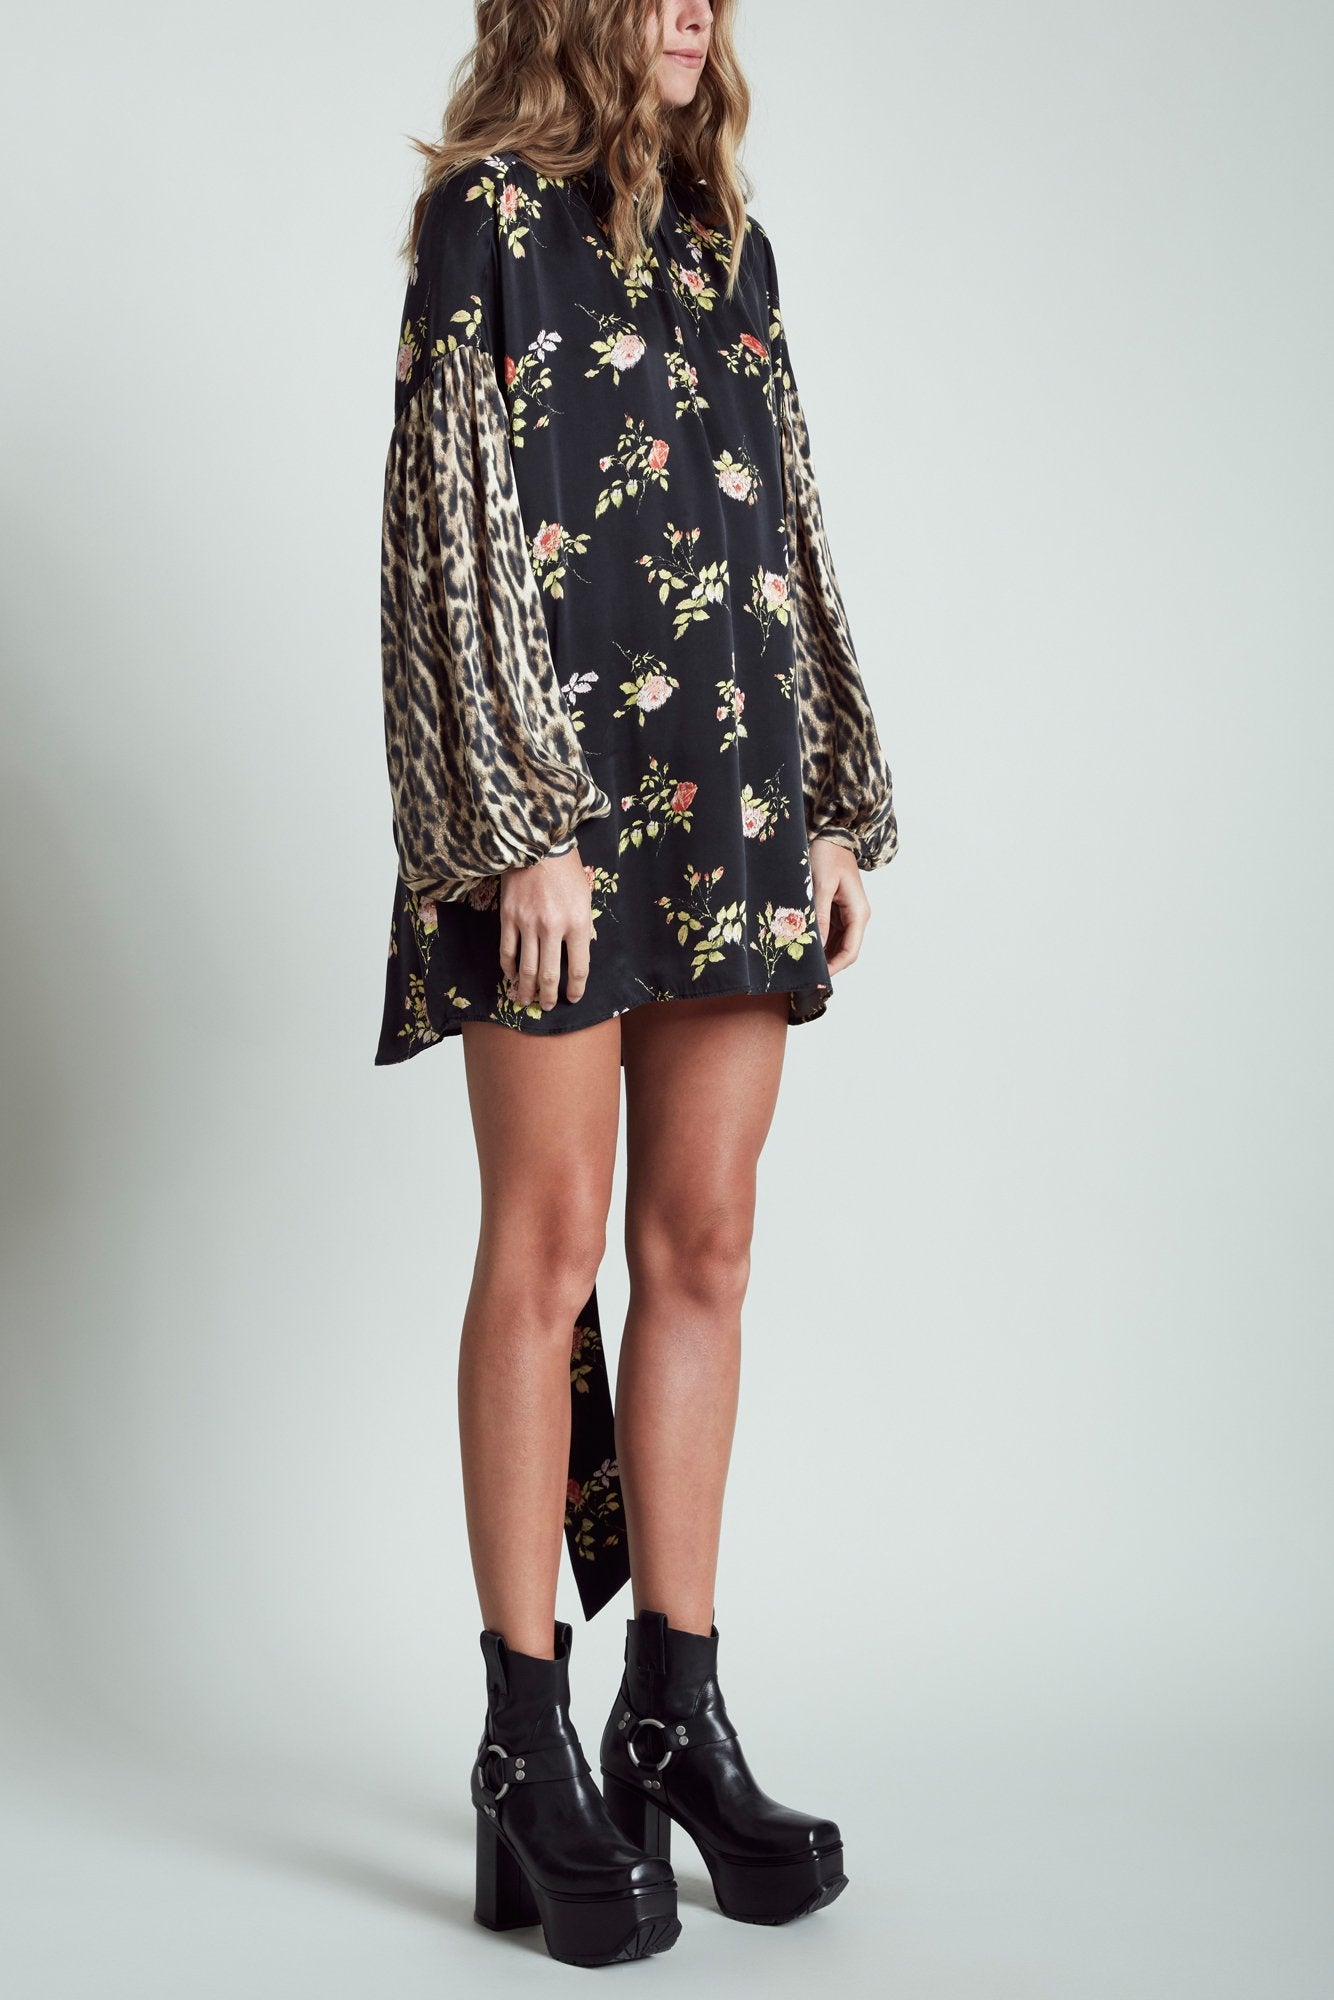 Neck Tie Dress - Black Floral